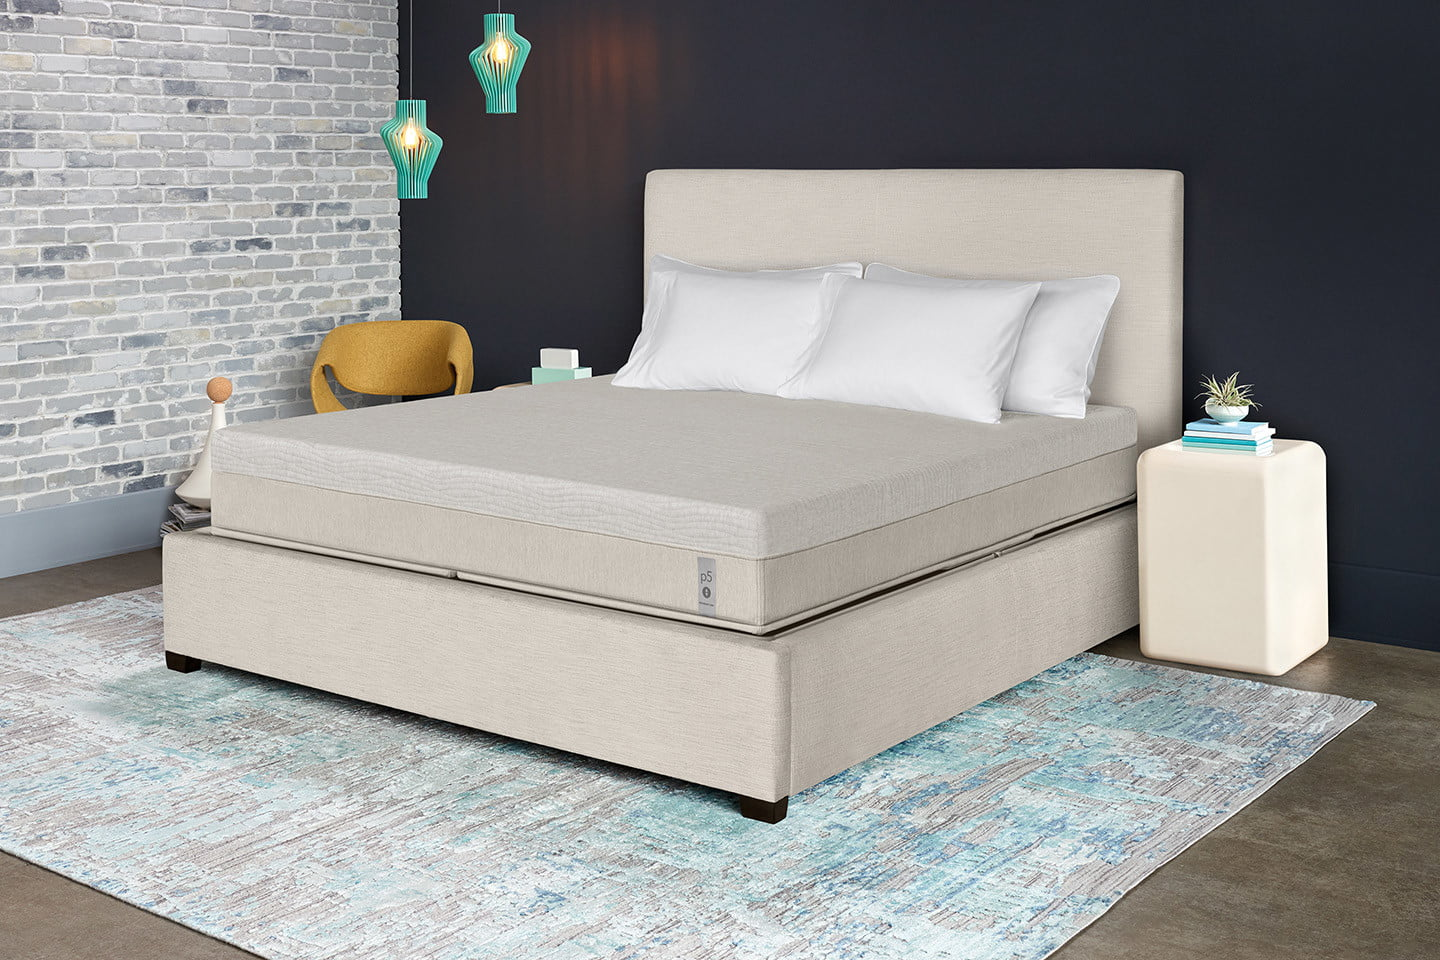 Sleep Number S 360 P5 Bed Is Smart But It S Not Magic